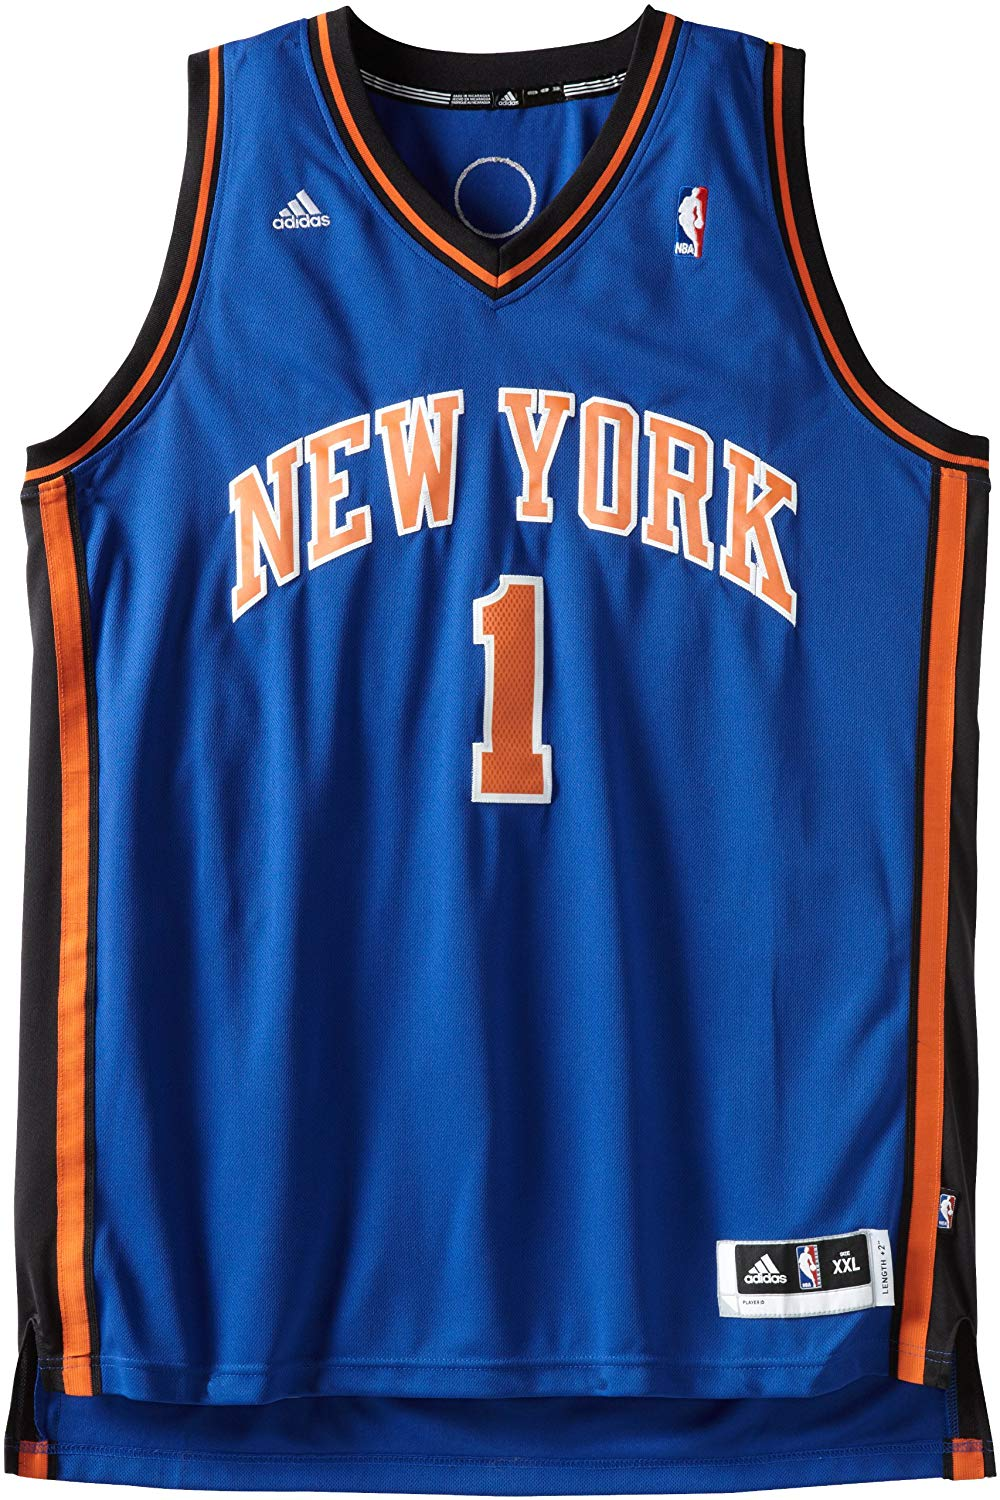 8f71bcb9df0 adidas Men s New York Knicks Stoudemire Jersey - Large - Trade Sports